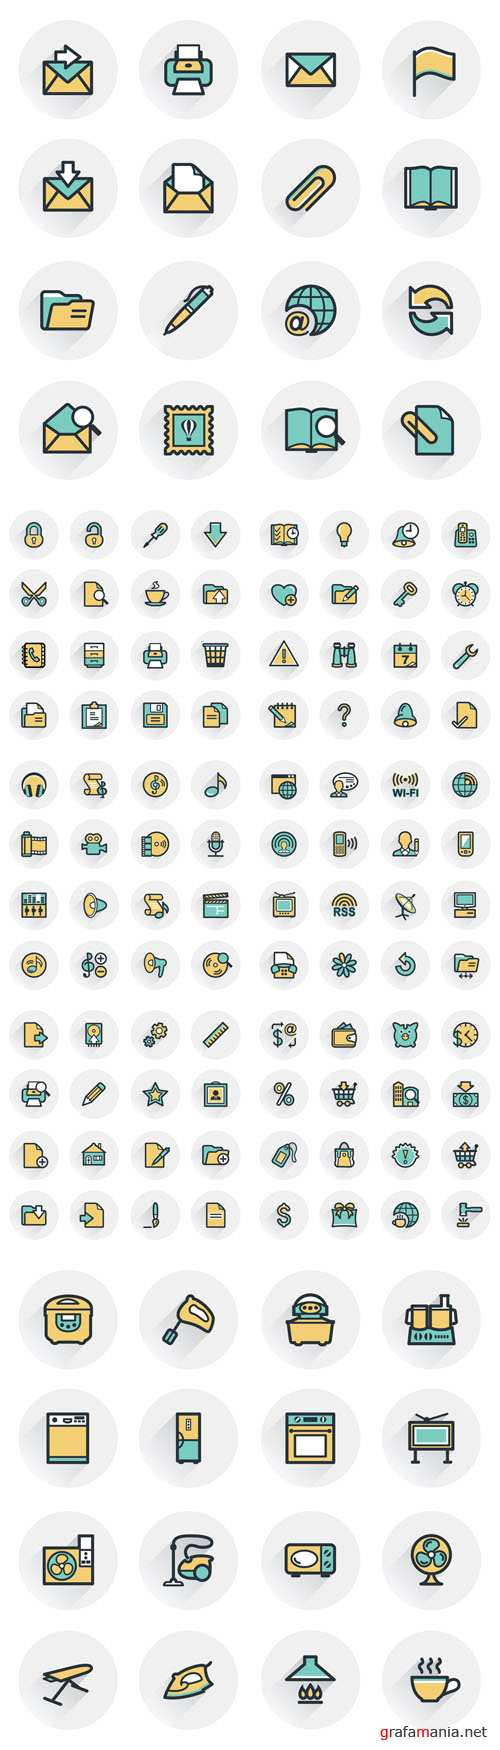 Vector Commerce Document Home Appliances Email Icons Contour Lines with Color Fills Flat Design